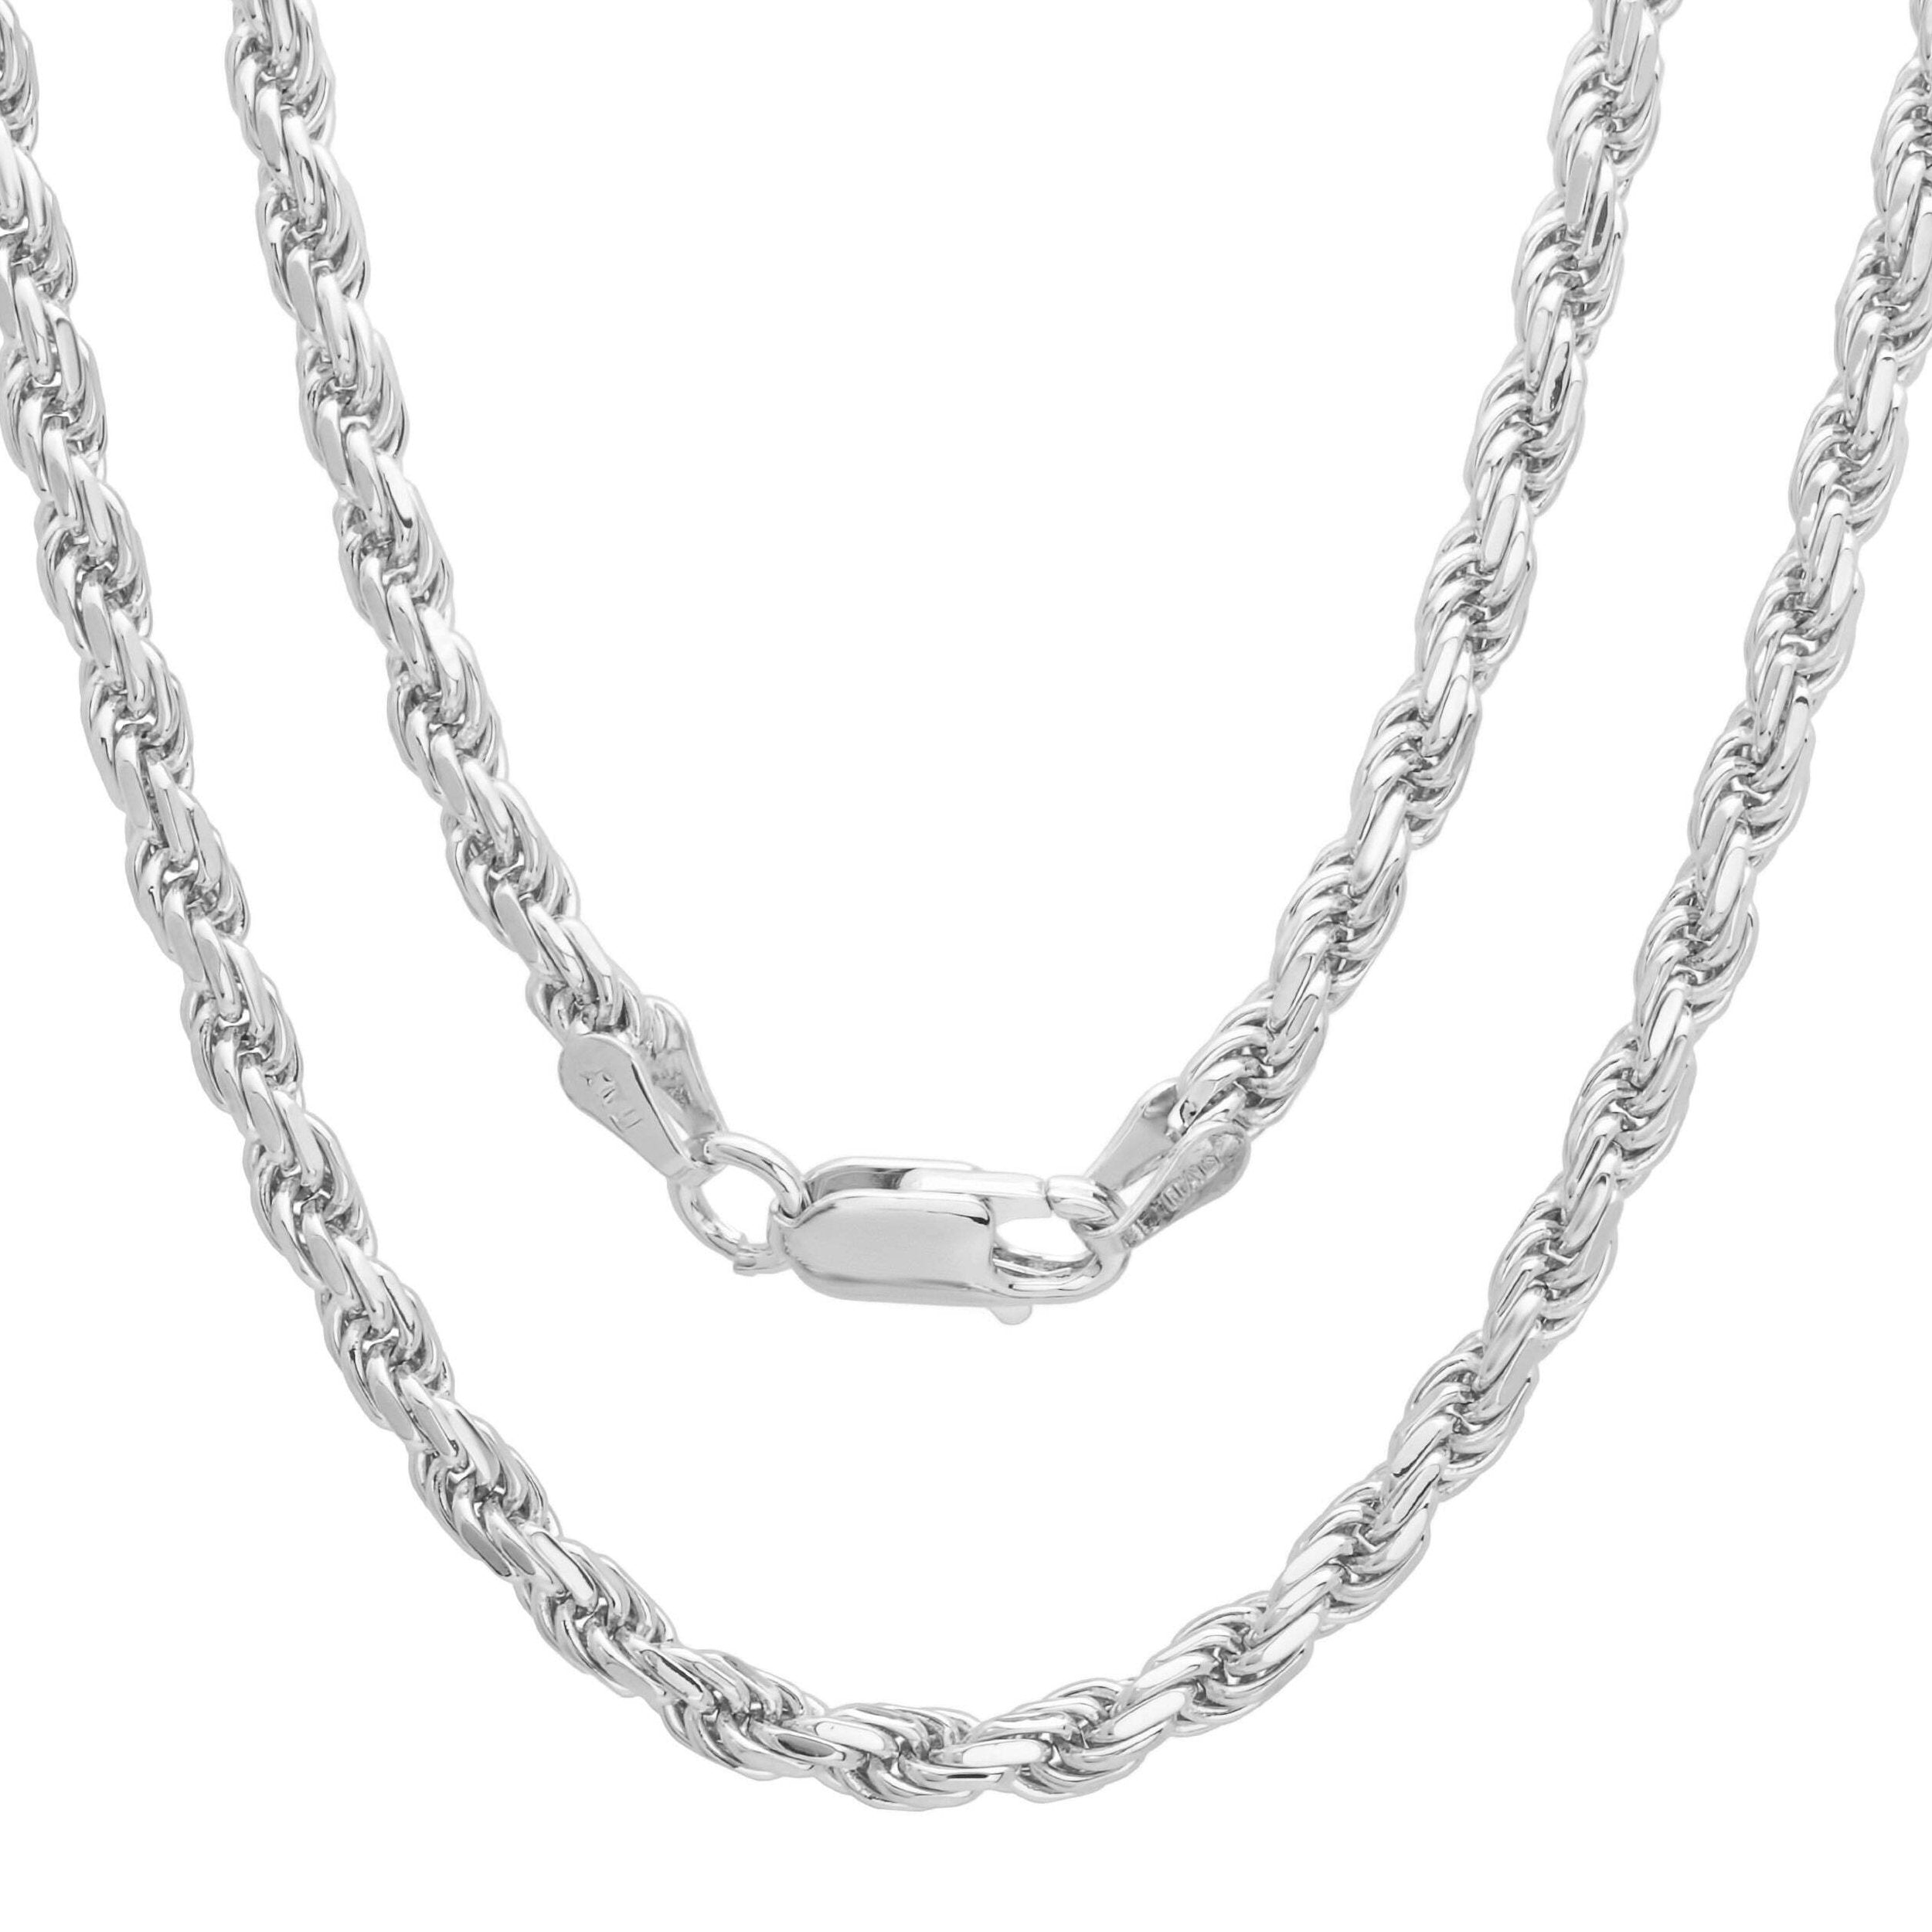 "3.0MM 060 Rhodium Plated Rope Chain .925 Sterling Silver Length ""8-28"" Inches"